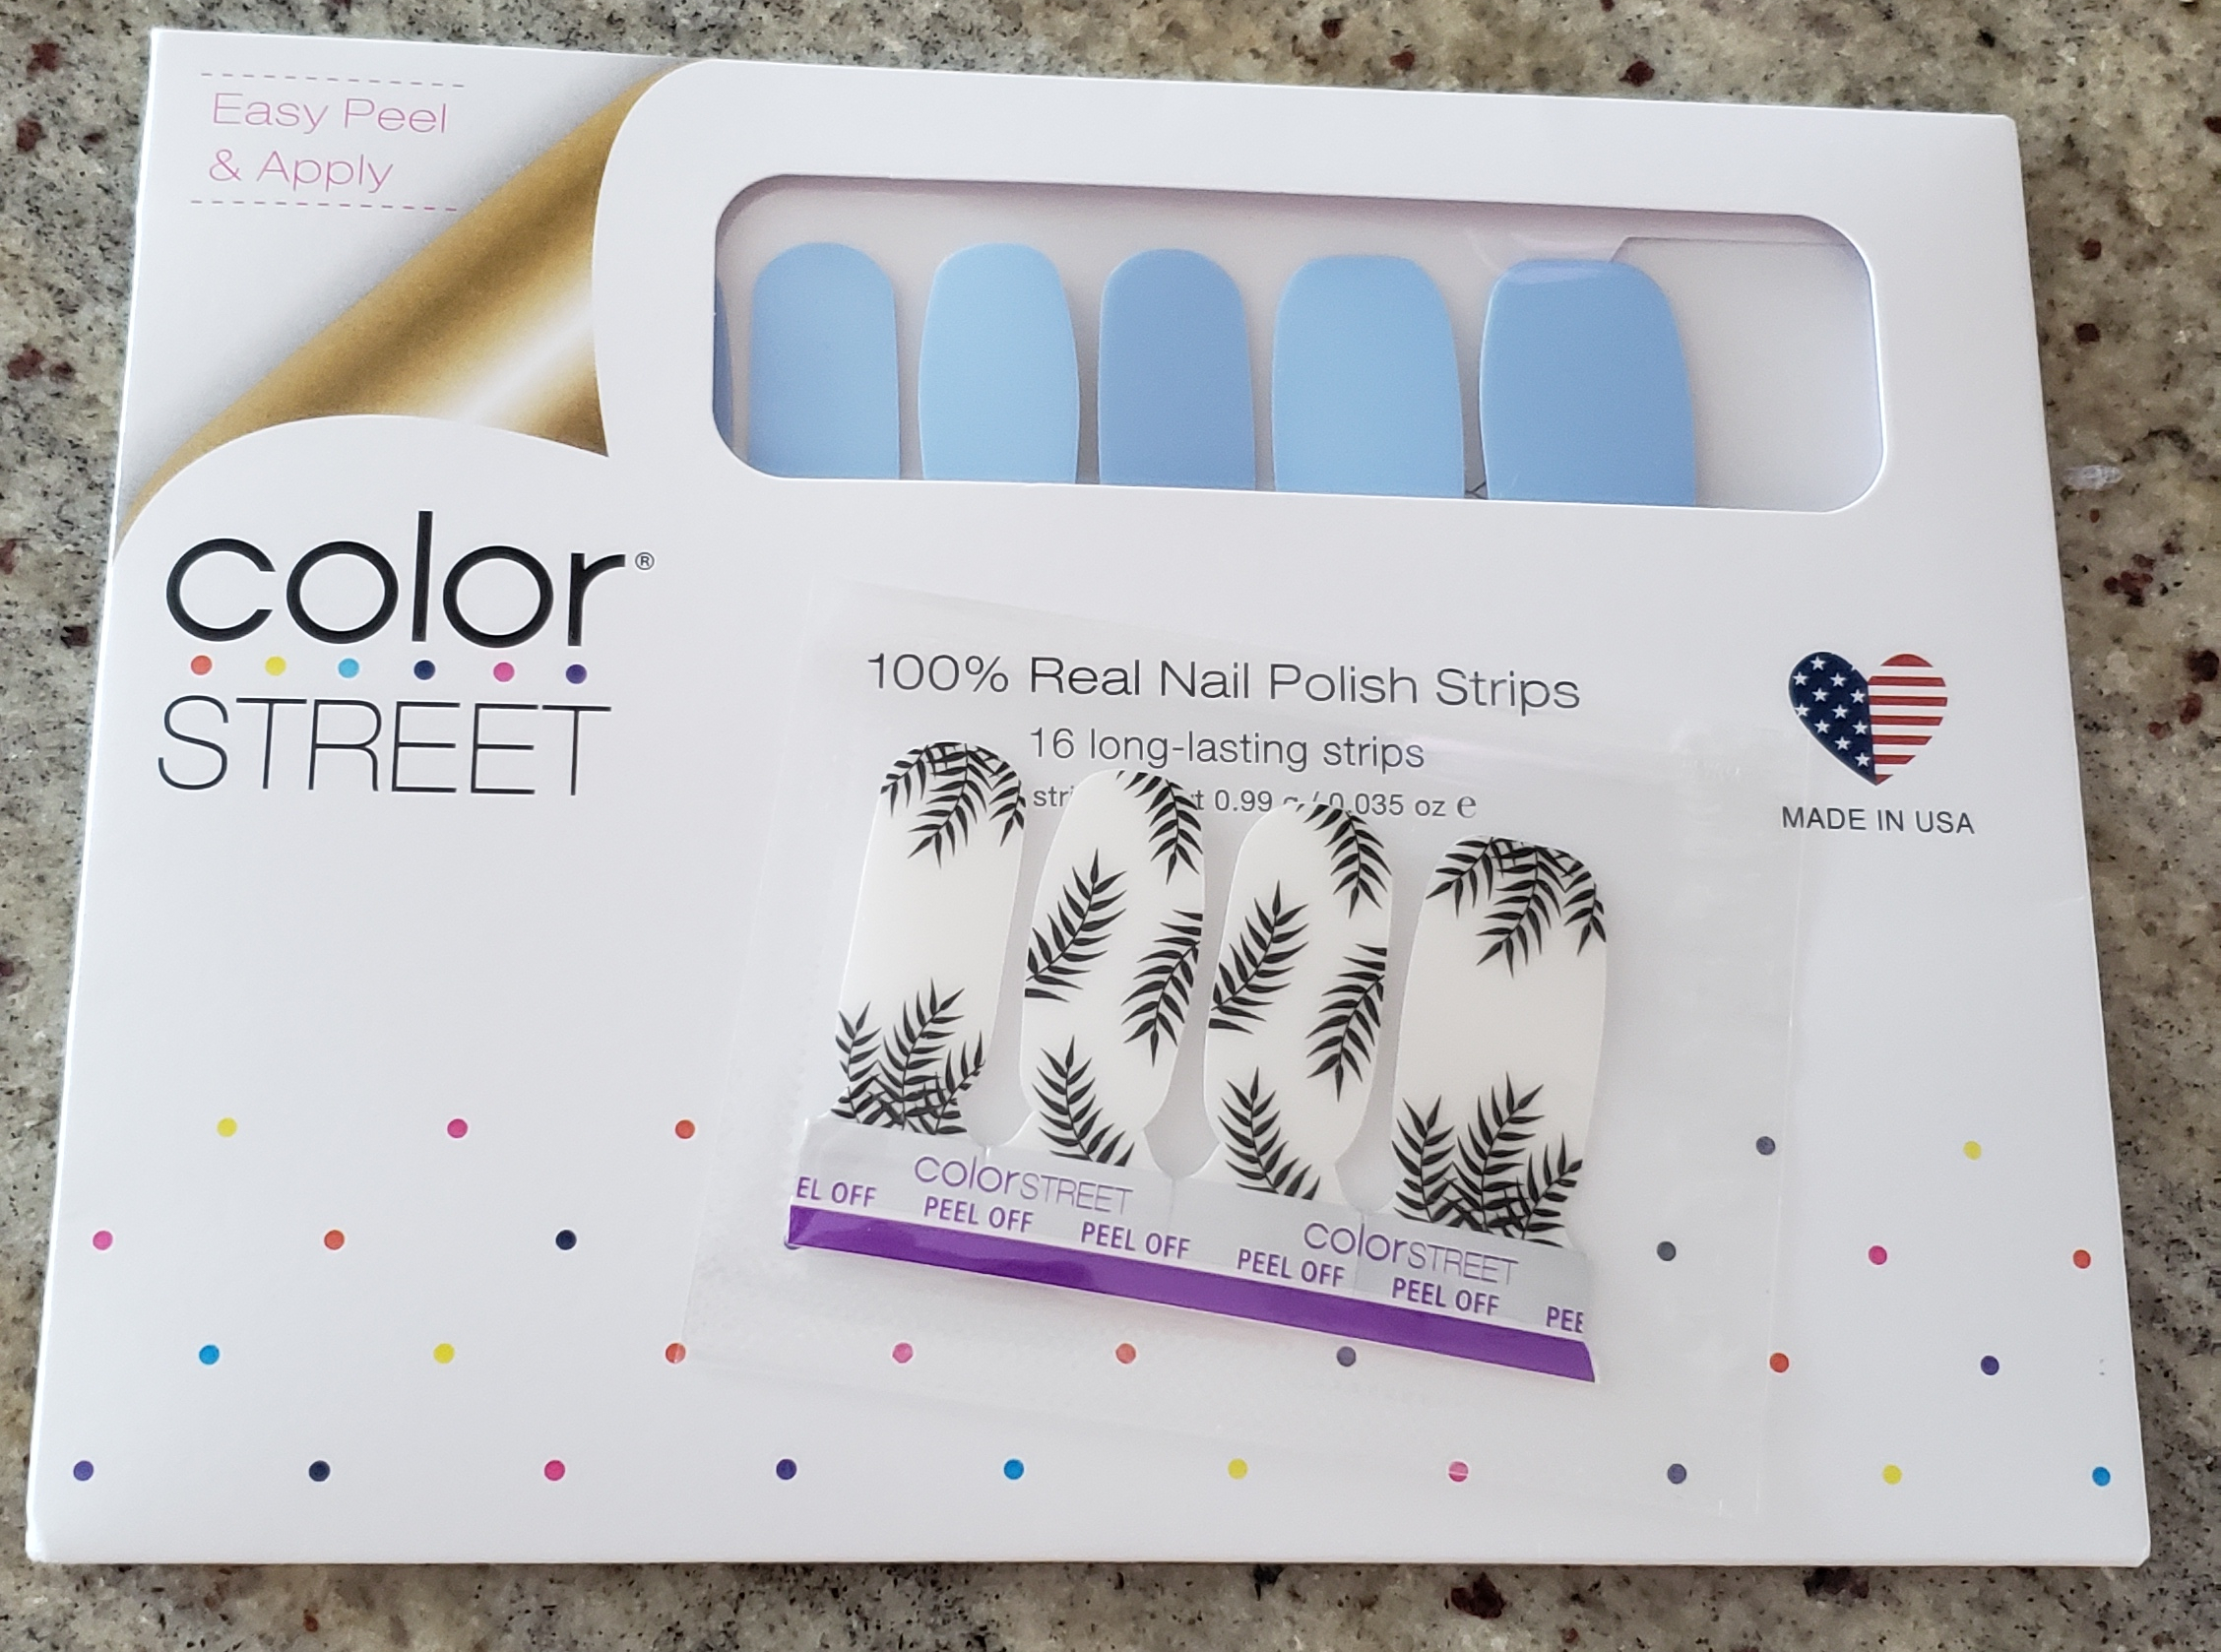 Color Street Nails Nail polish at home